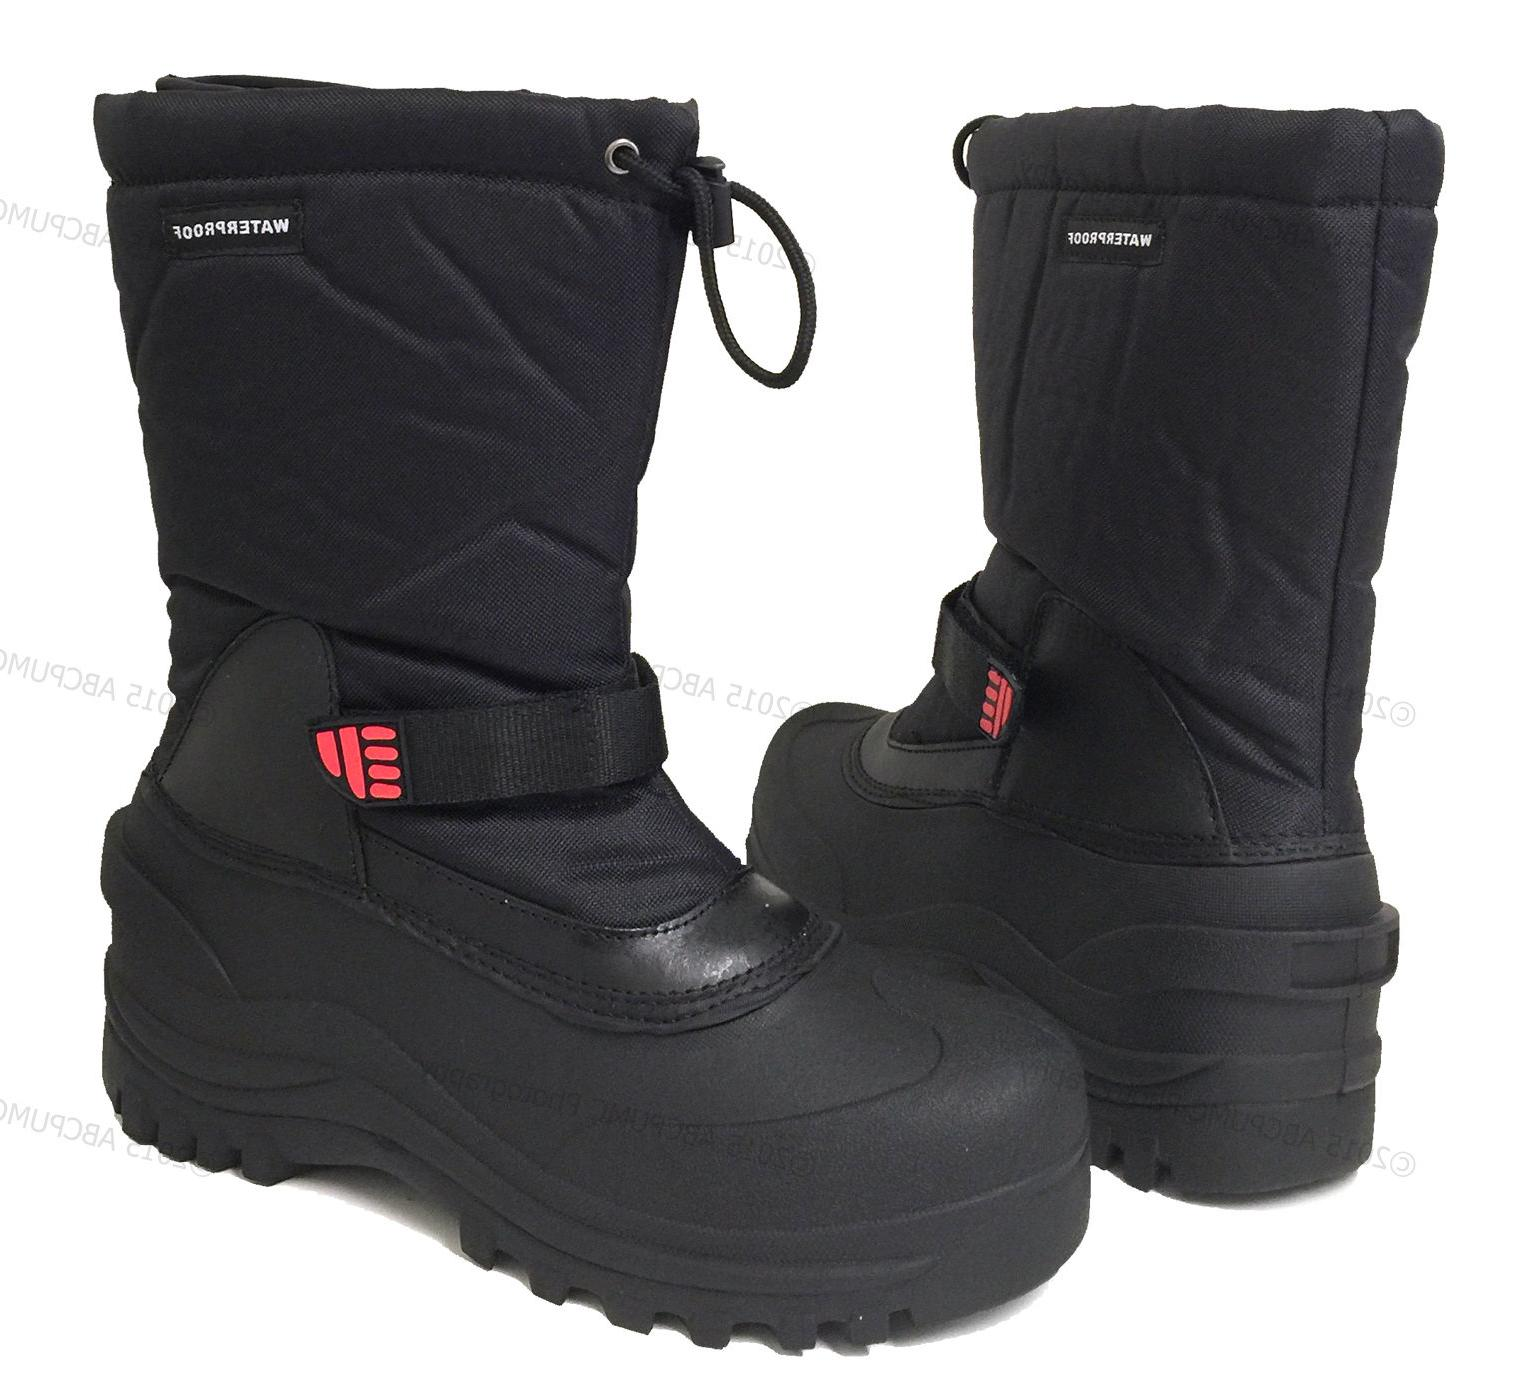 "Mens Winter Boots 10"" Ski"